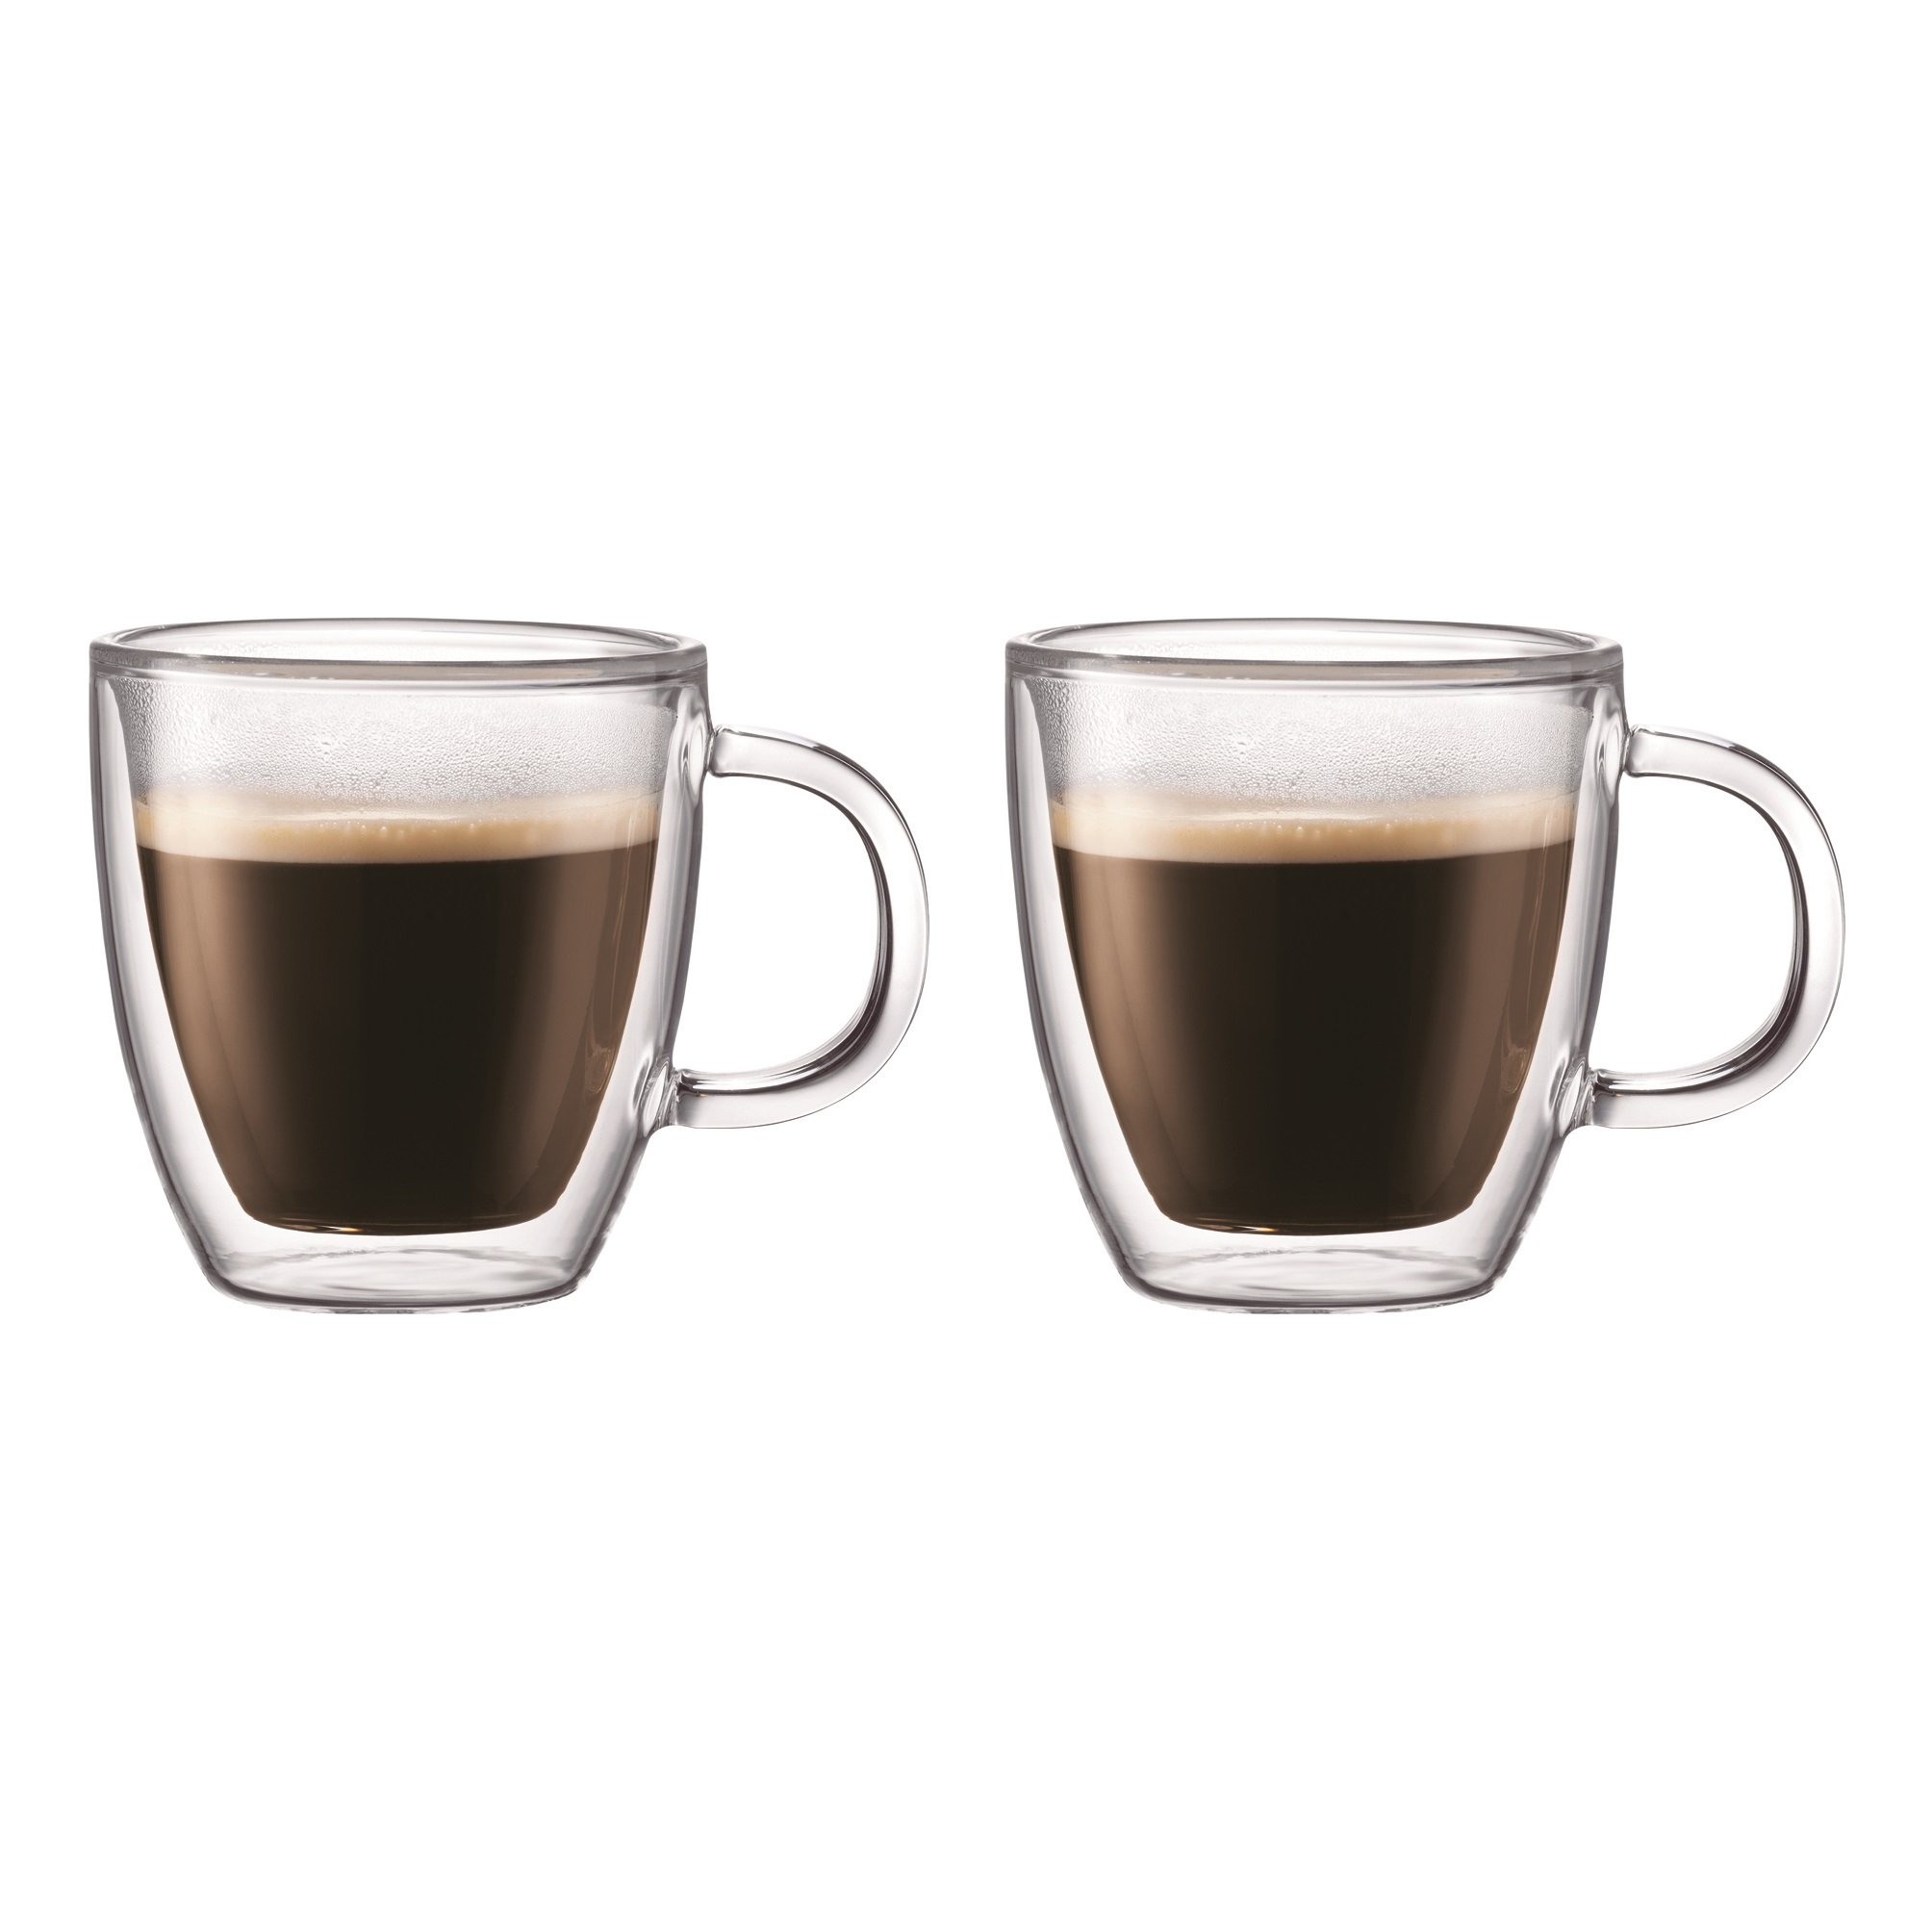 Bodum Bistro Coffee Mug, Double-Wall Insulated Glass Mugs, Clear.15 Liter, 5 Ounces Each (Set of 2)